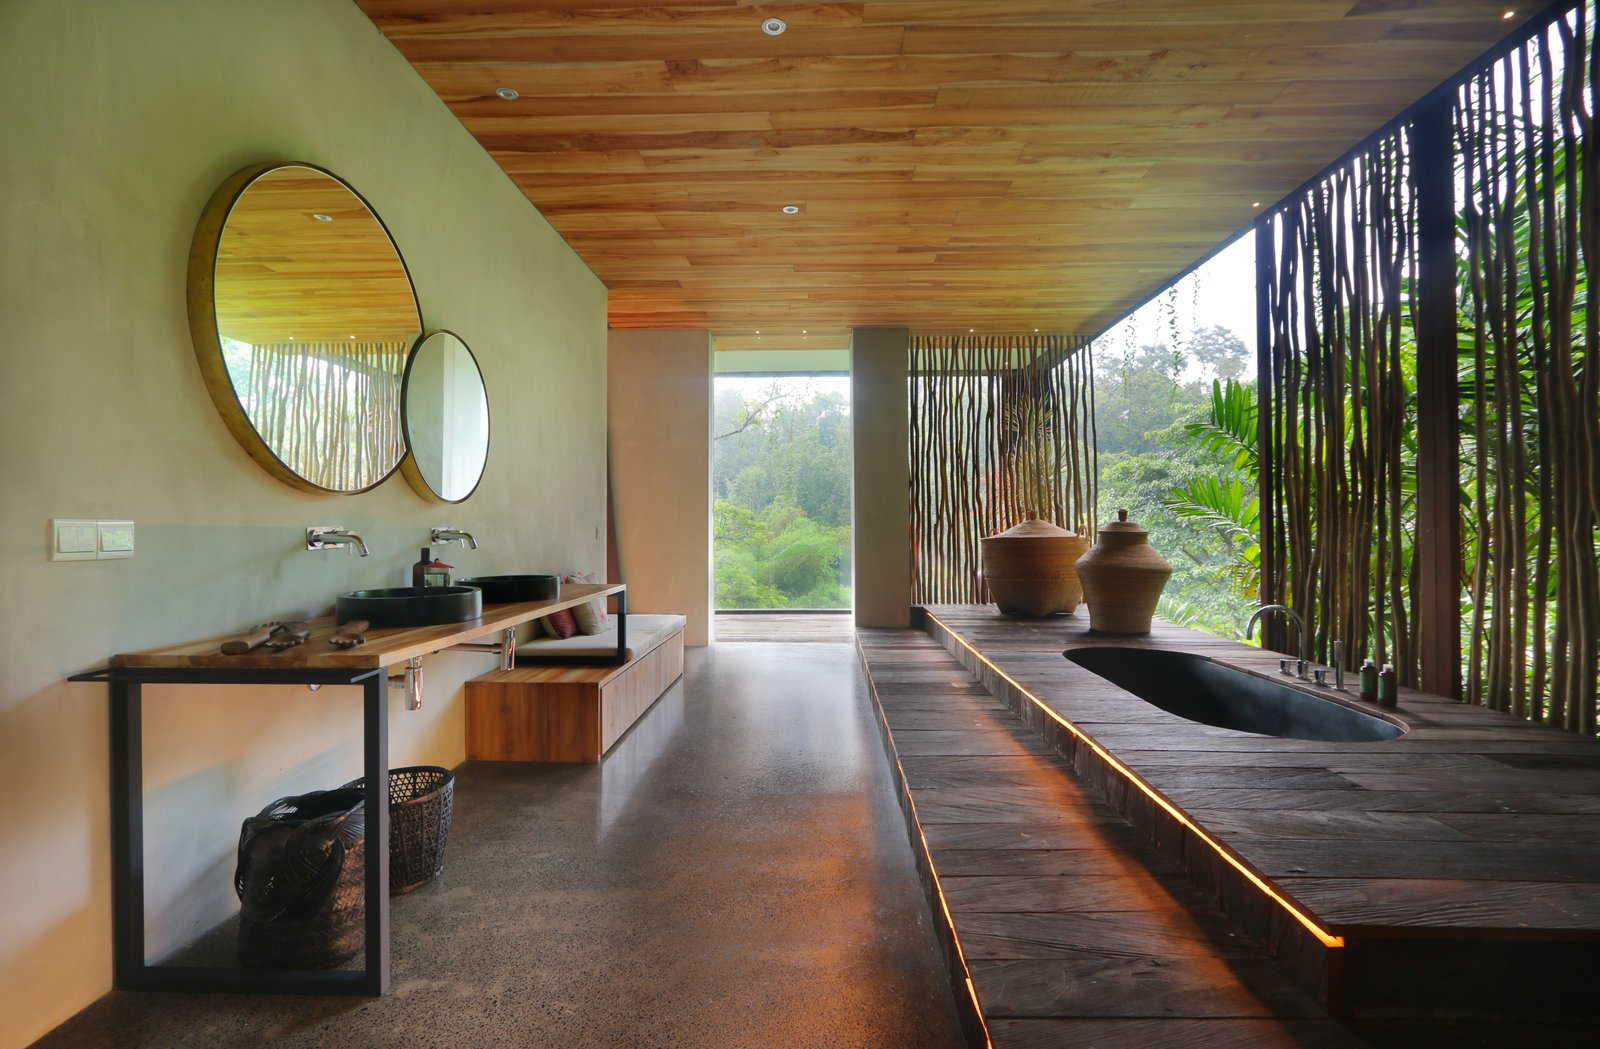 Bath, Drop In, Vessel, Recessed, and Wood  Best Bath Recessed Drop In Photos from An Incredible Vacation Villa in the Balinese Jungle That's Part Chameleon